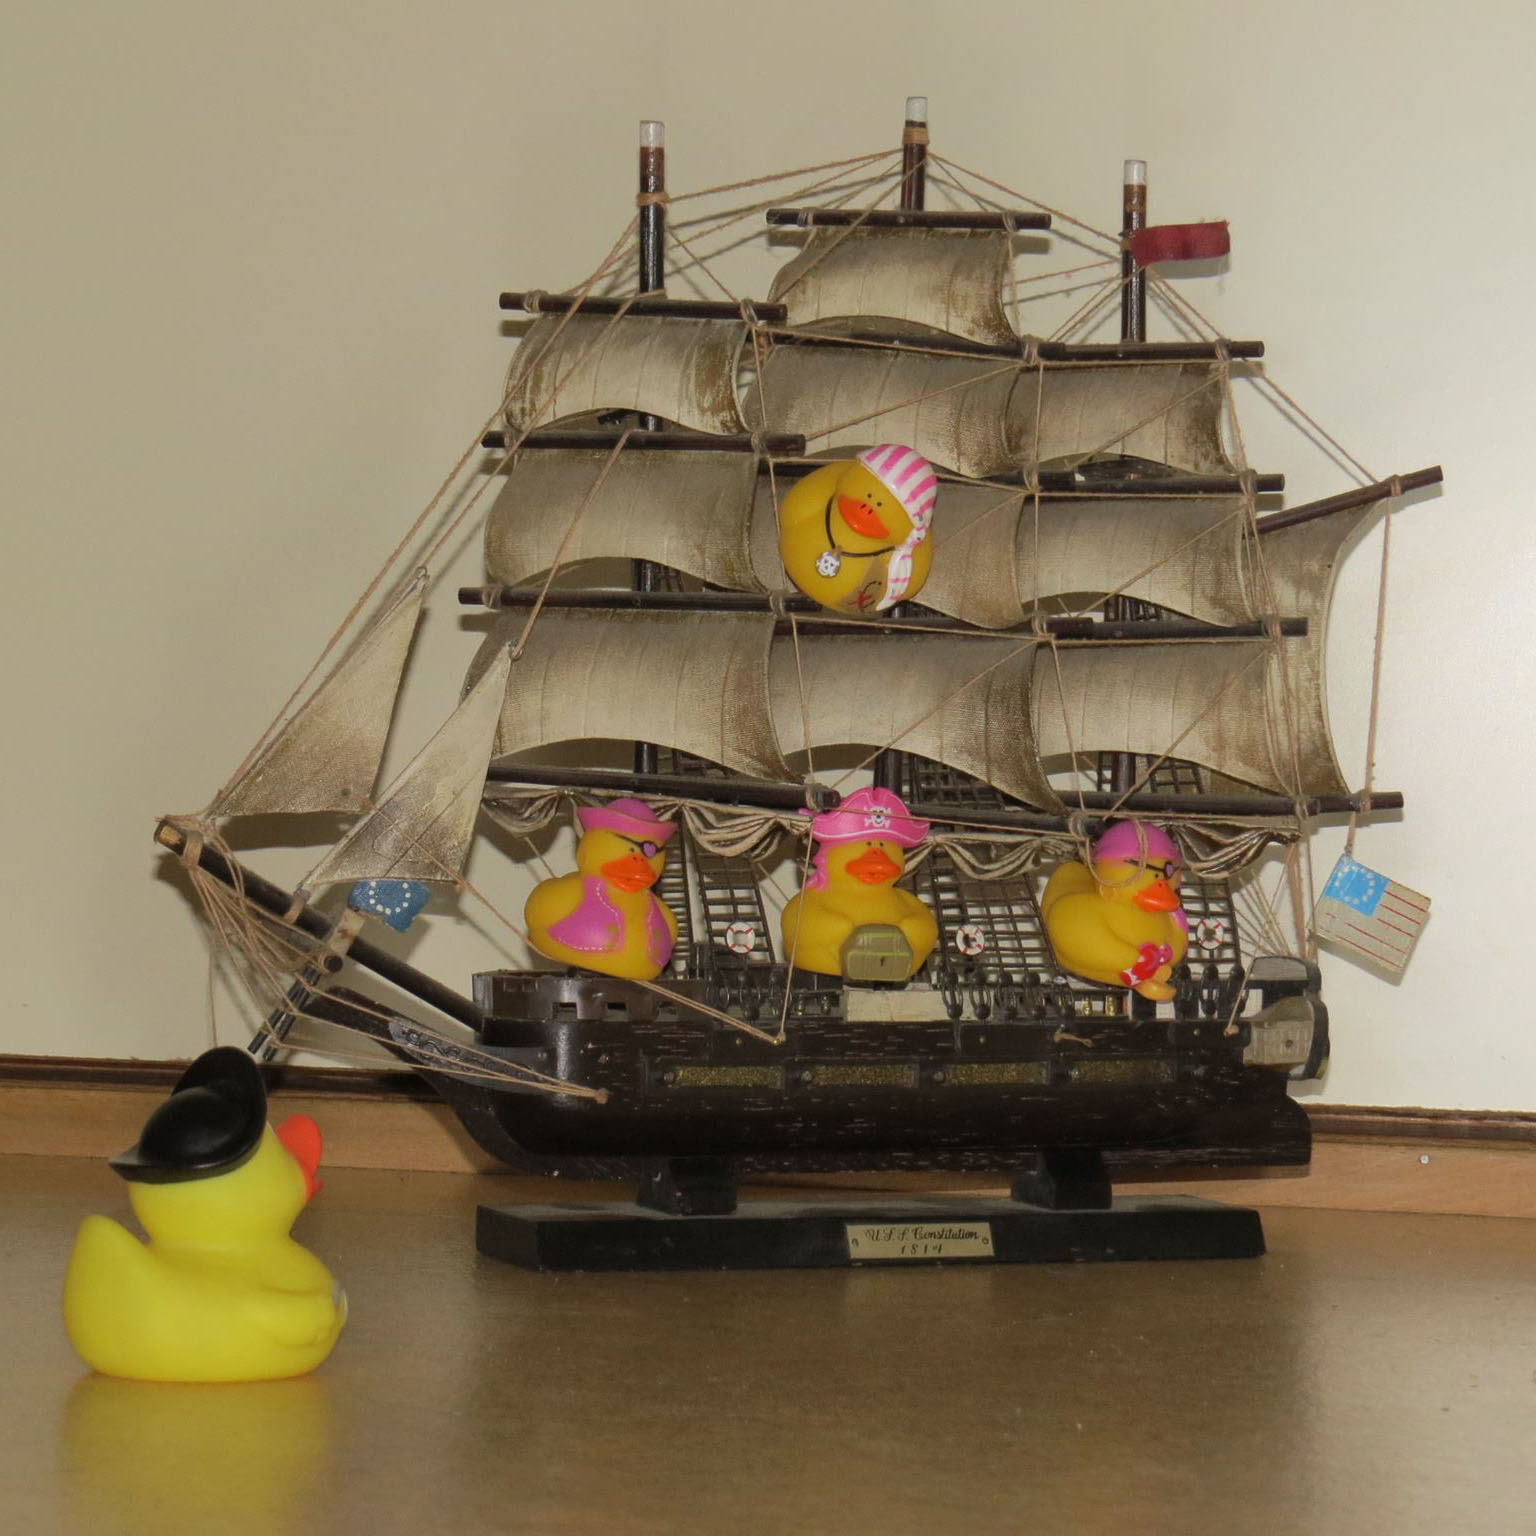 Lady Pirate Rubber Ducks - $5.00 : Ducks Only!, Exclusively Ducks